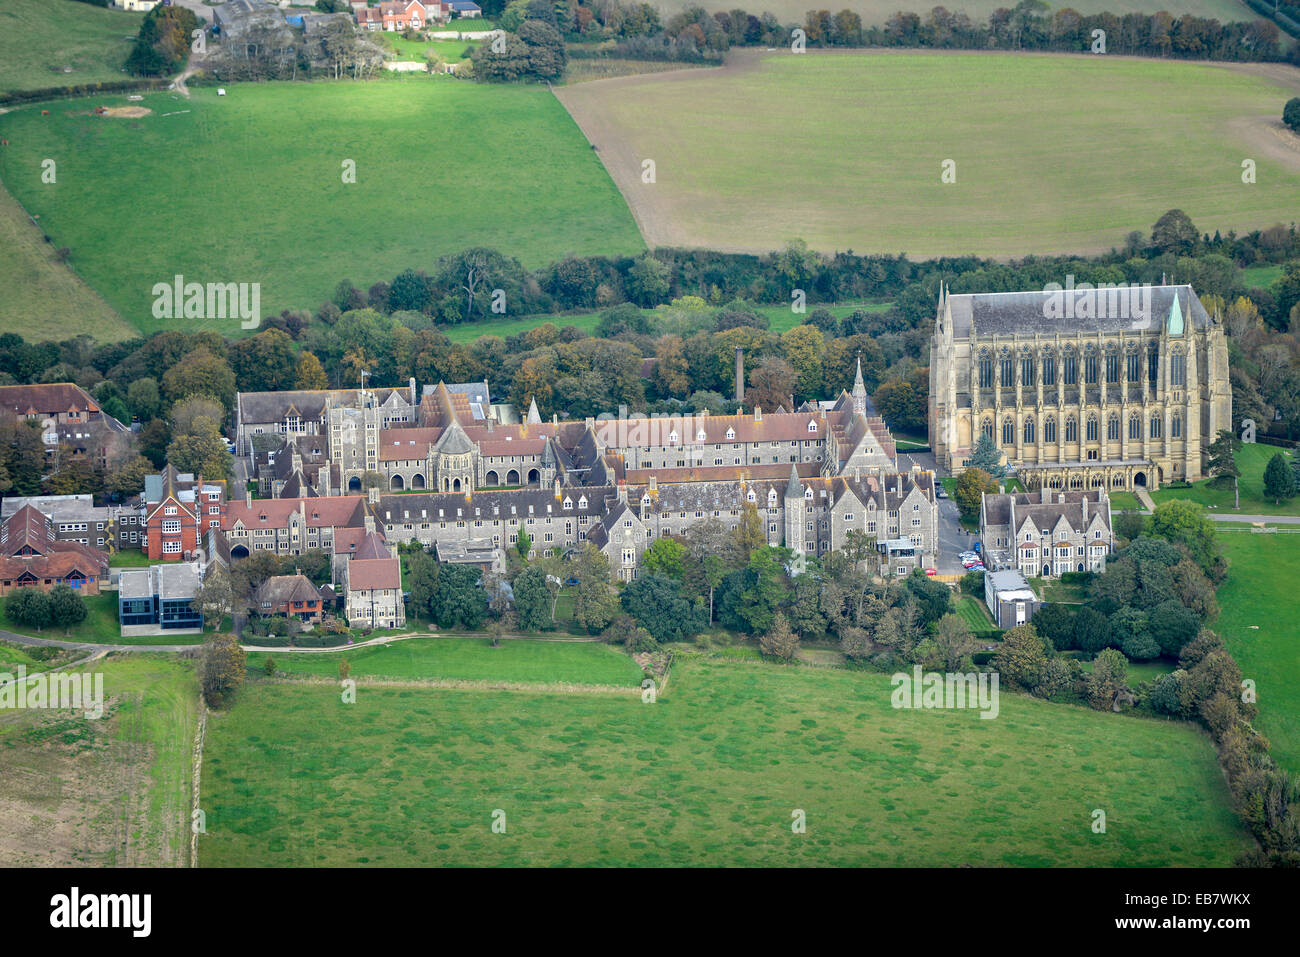 An aerial view of Lancing College, an independent boarding and day school in Sussex - Stock Image